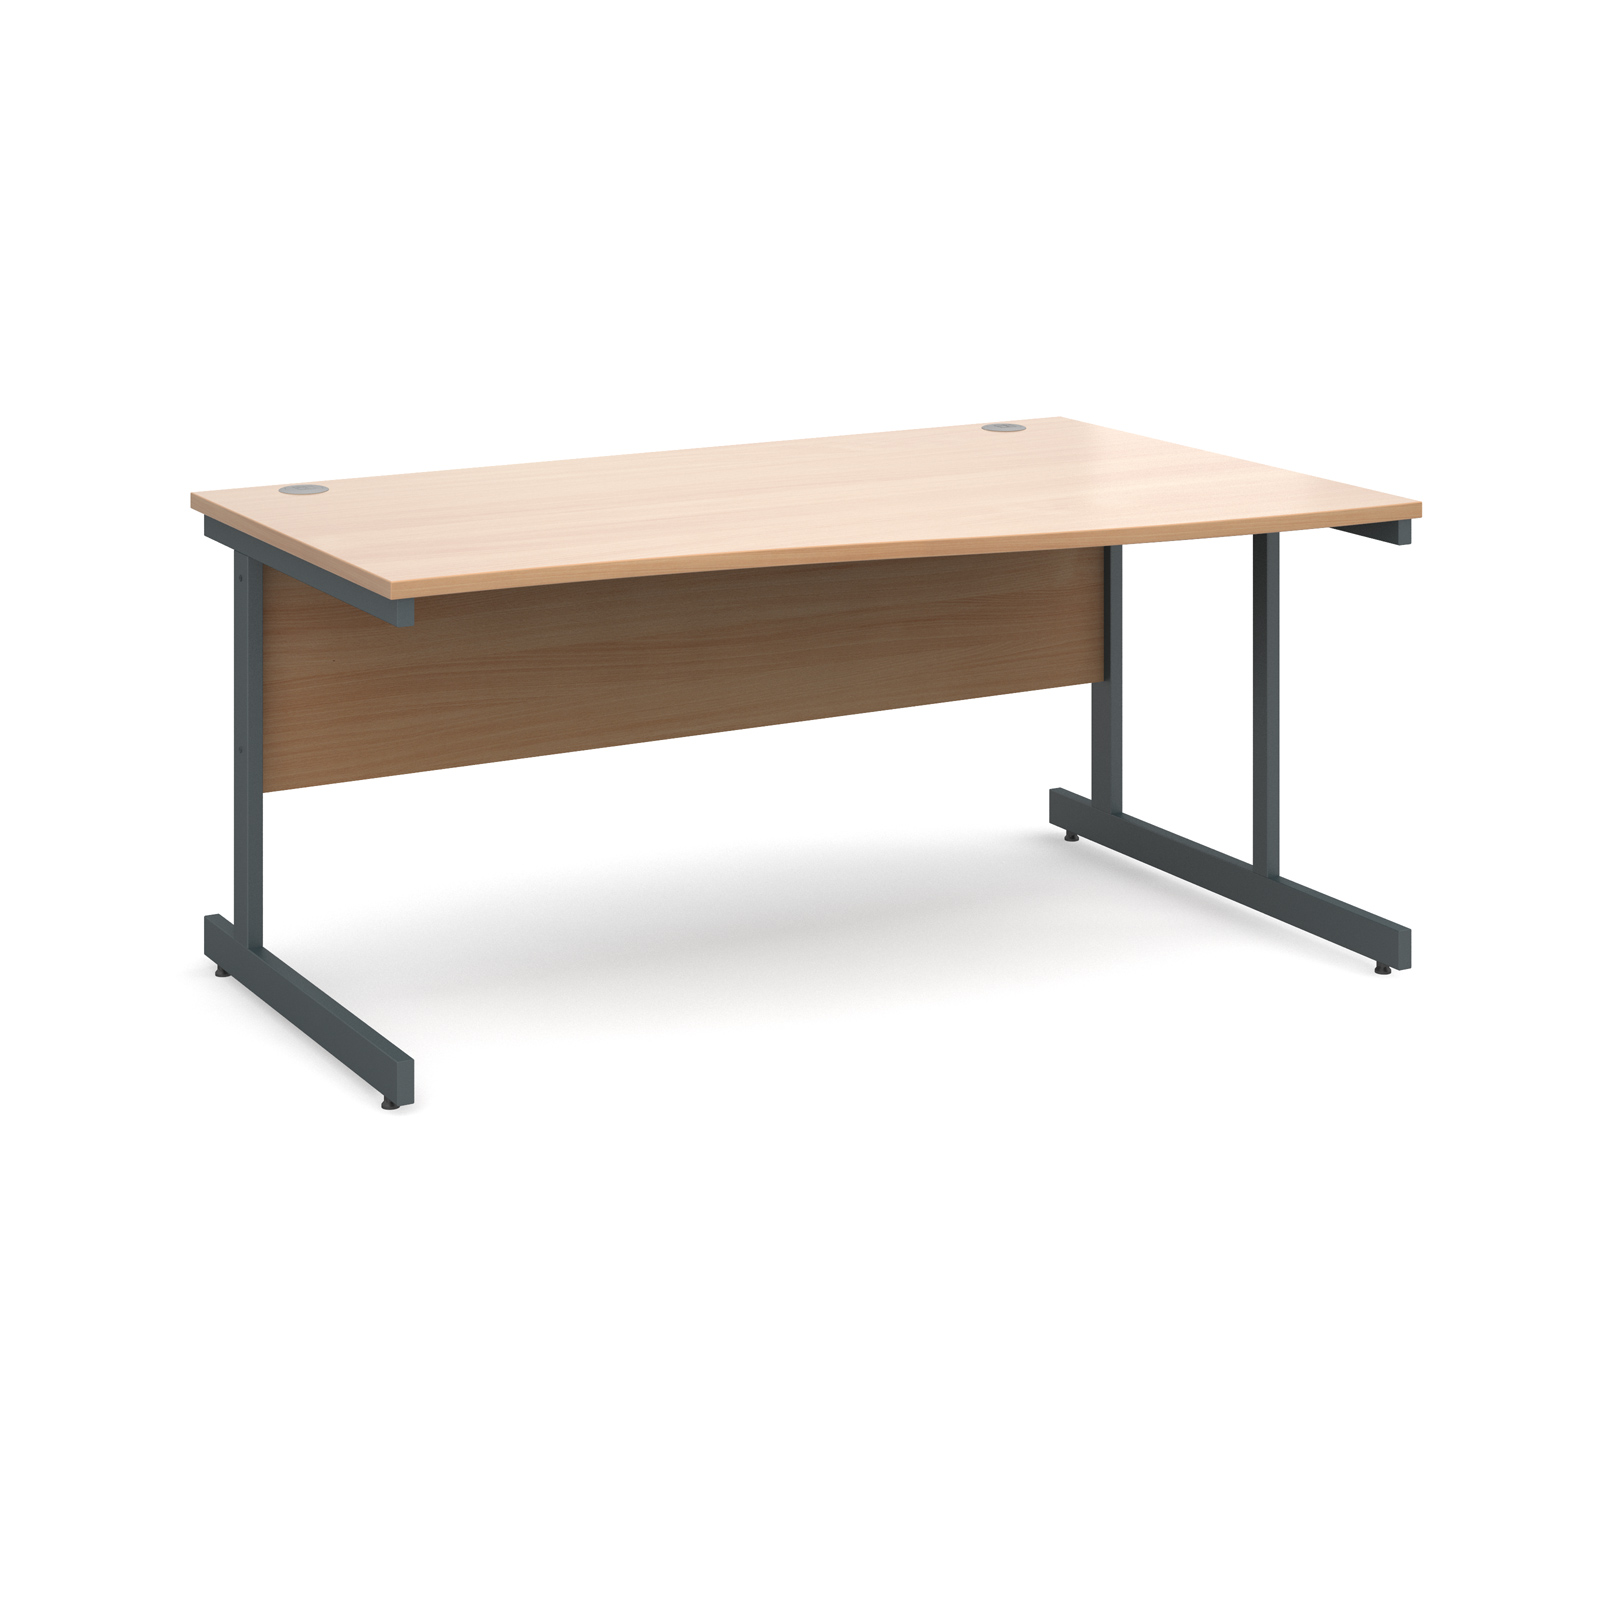 Contract 25 right hand wave desk 1600mm - graphite cantilever frame, beech top